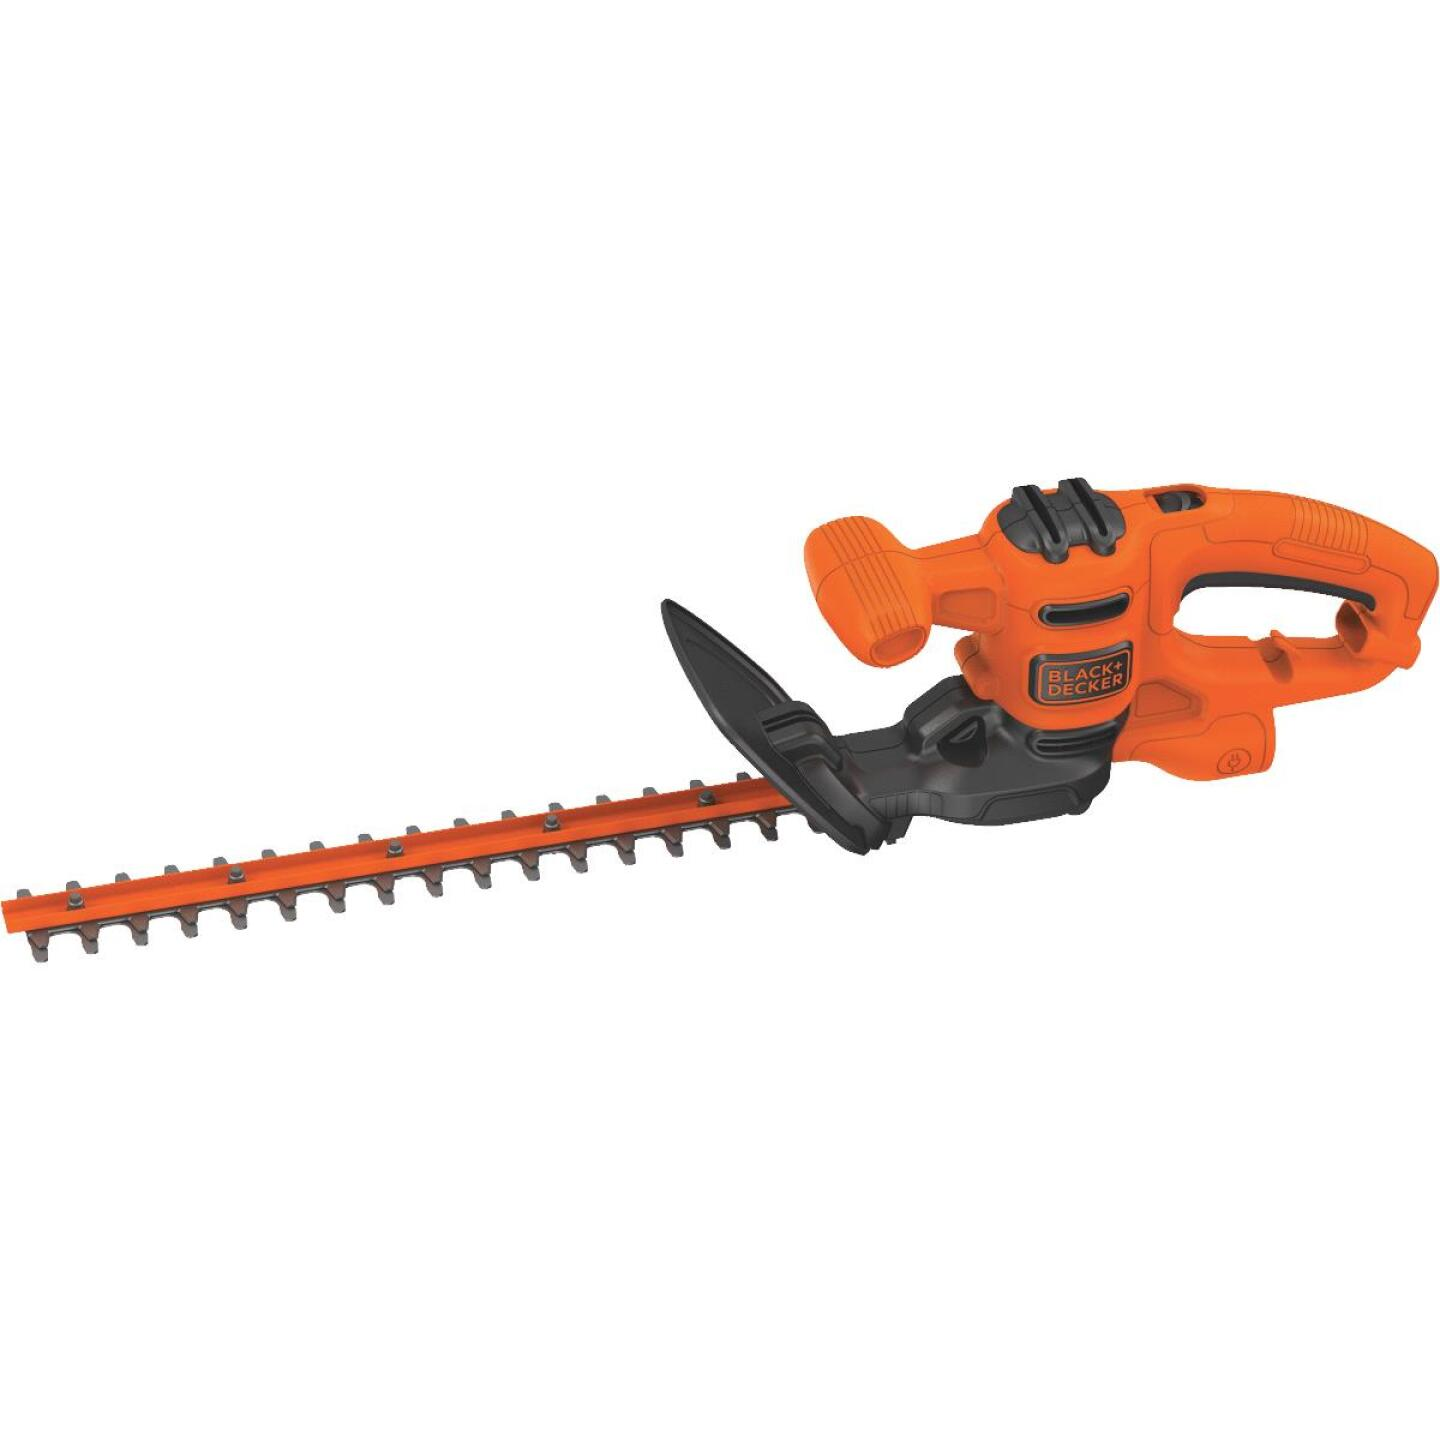 Black & Decker 16 In. 3-Amp Corded Electric Hedge Trimmer Image 1